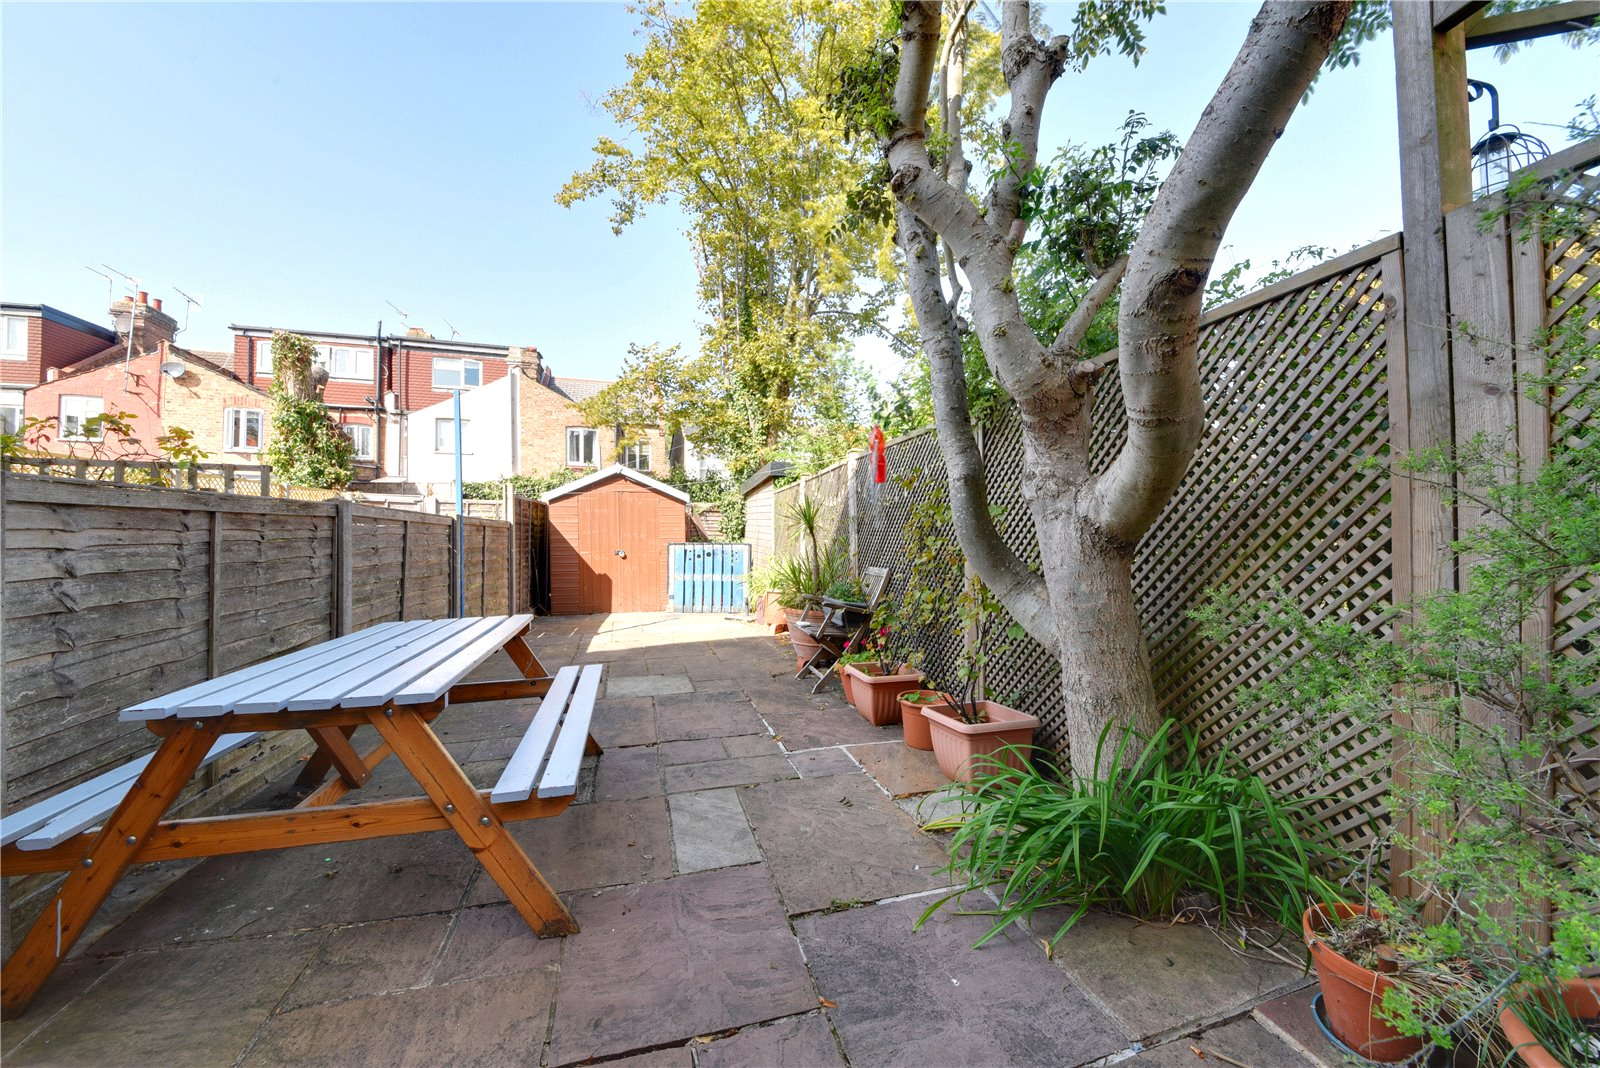 2 bed apartment for sale in East Finchley, N2 0SX  - Property Image 7